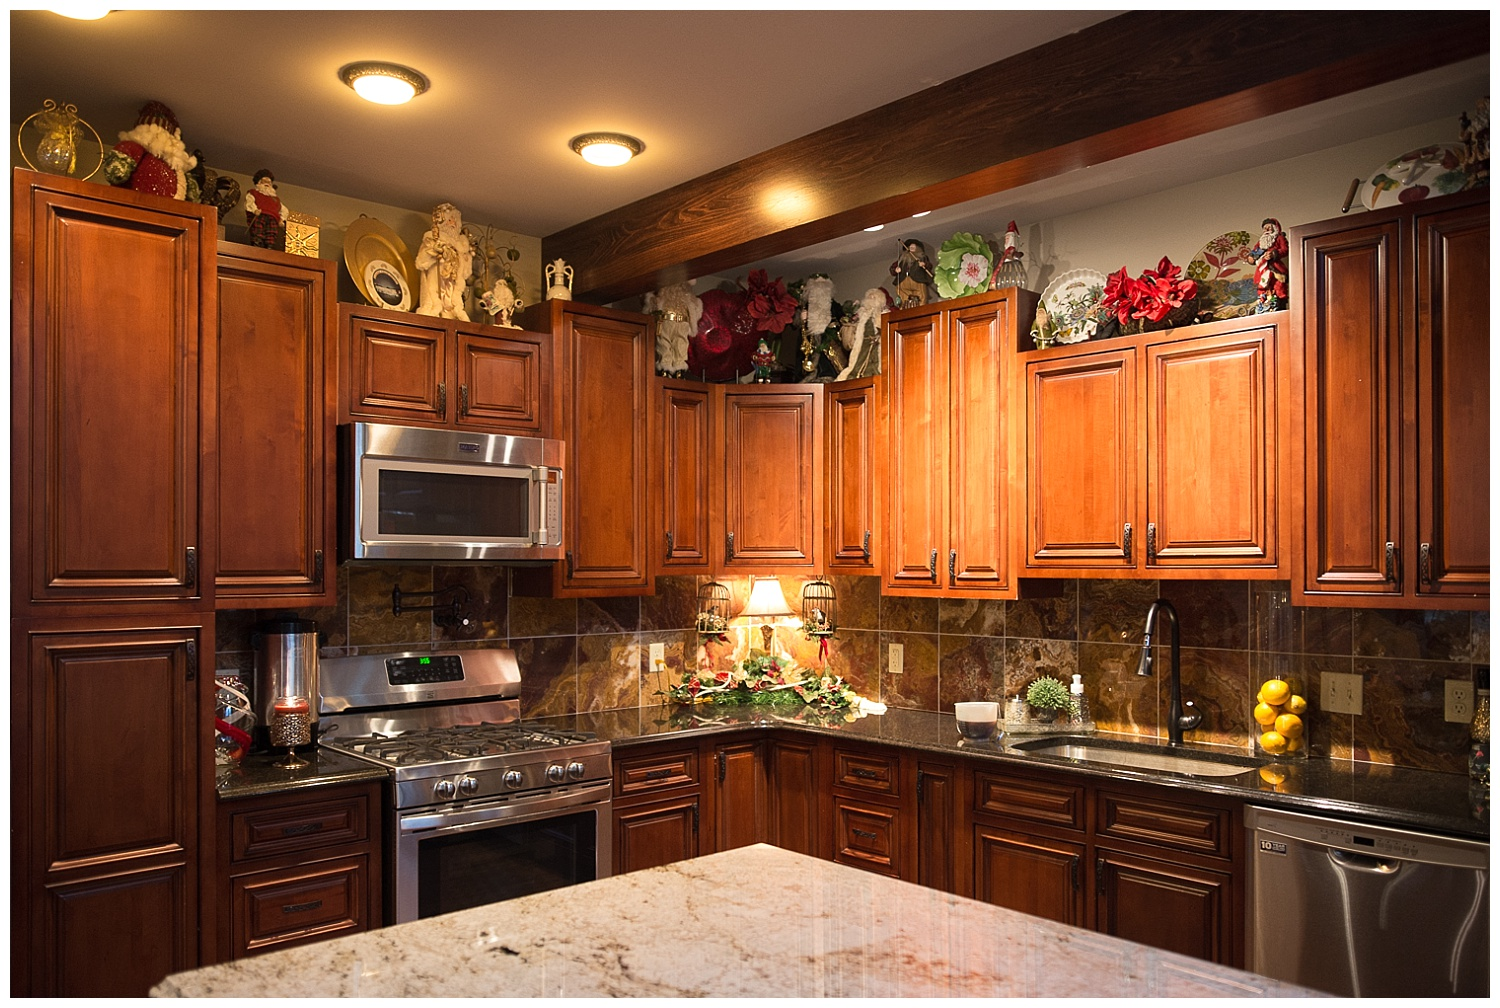 Chandra's Santa collection resides in her open-plan kitchen.